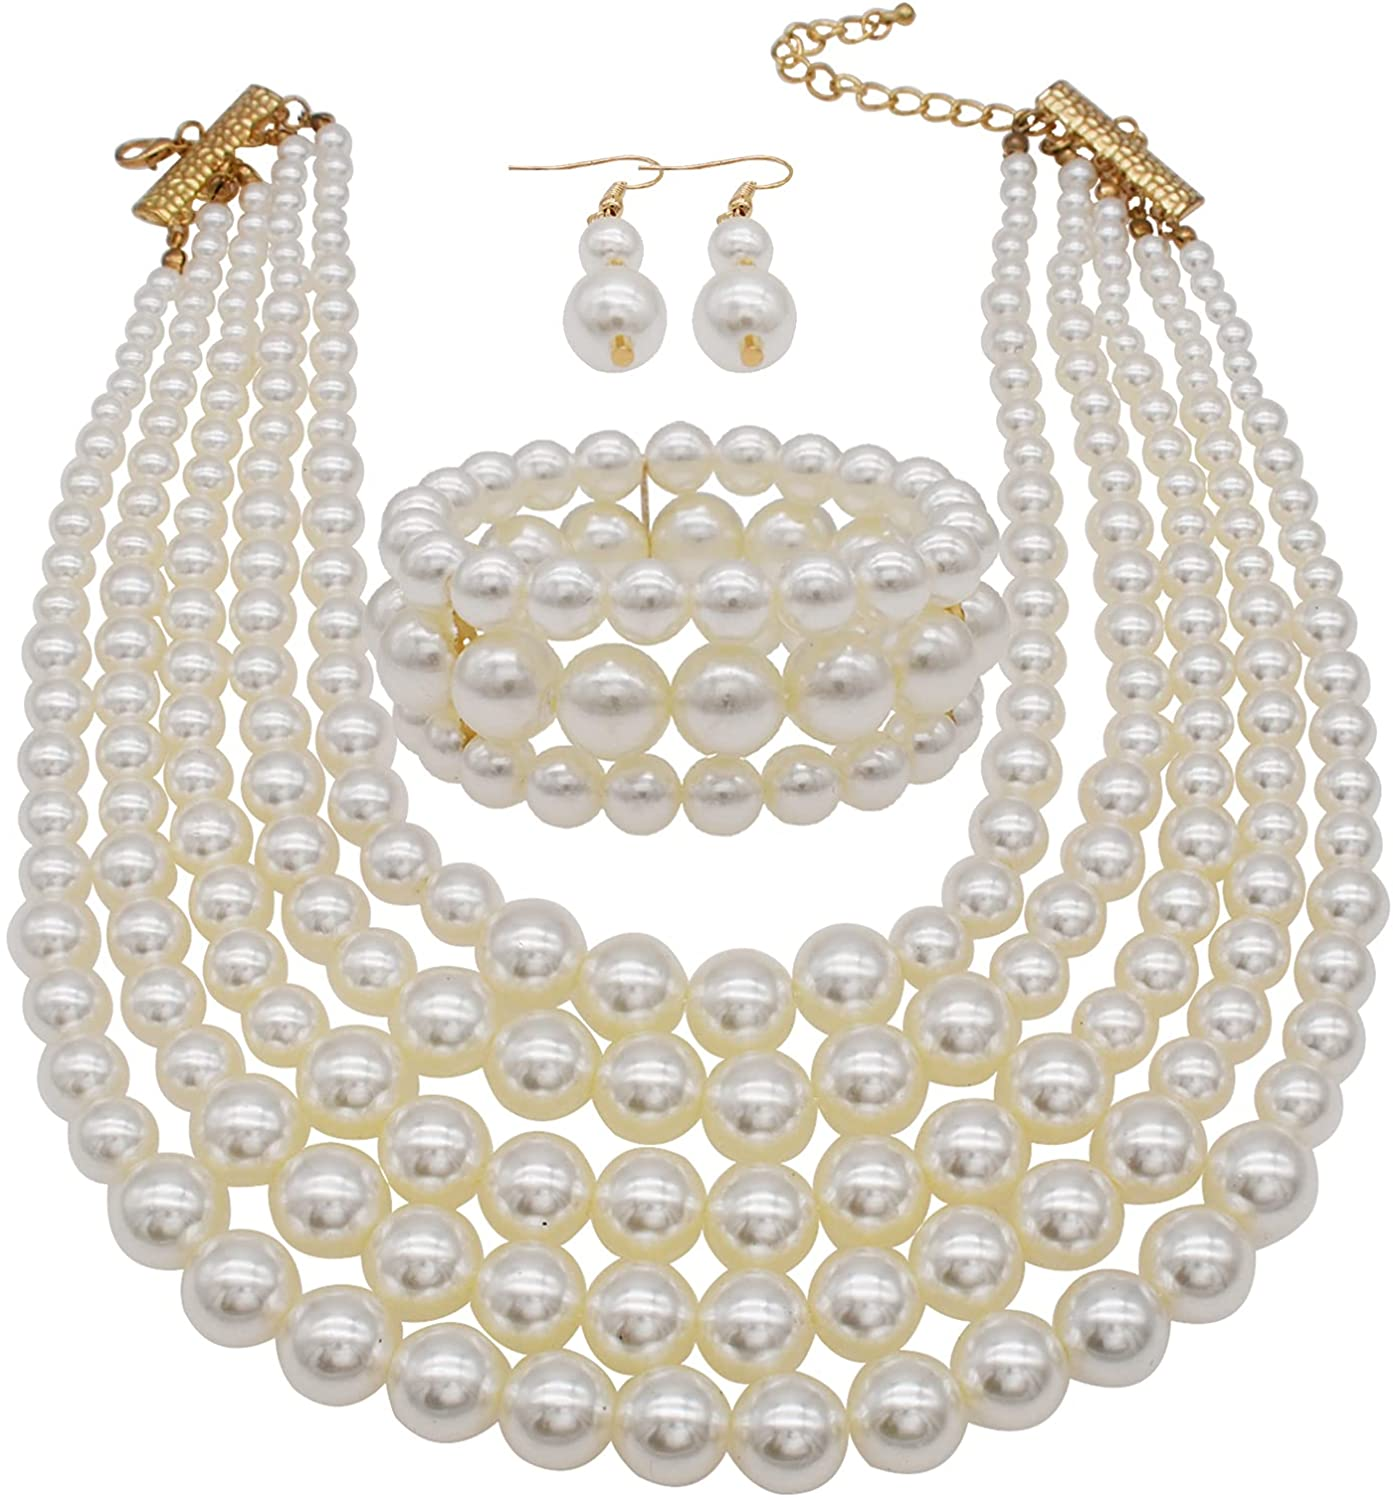 Pearl Necklace for Women 5 Layer Faux Pearl Necklace Bracelet and Earrings Set Costume Pearl Jewelry